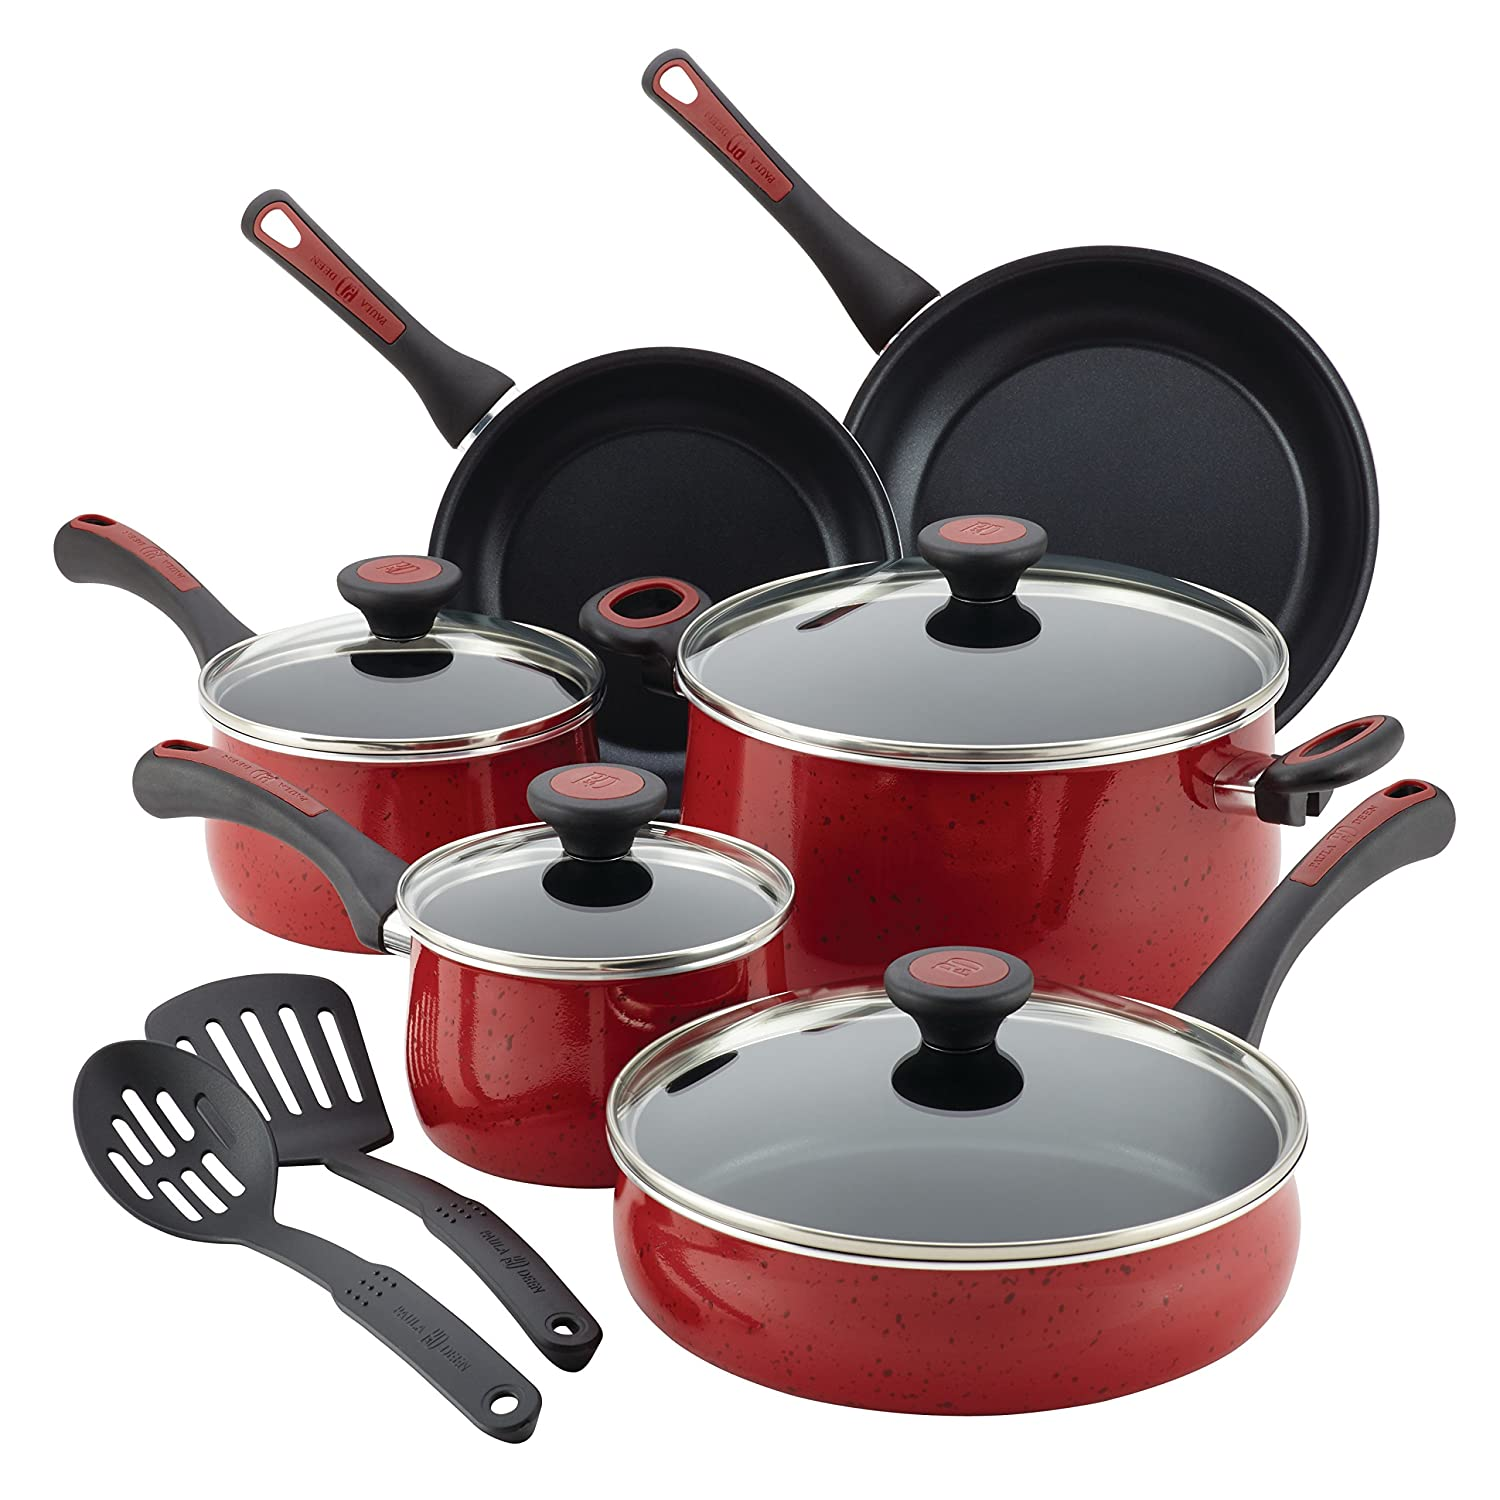 Paula Deen Riverbend Aluminum Nonstick Cookware Set, 12-Piece, Red Speckle